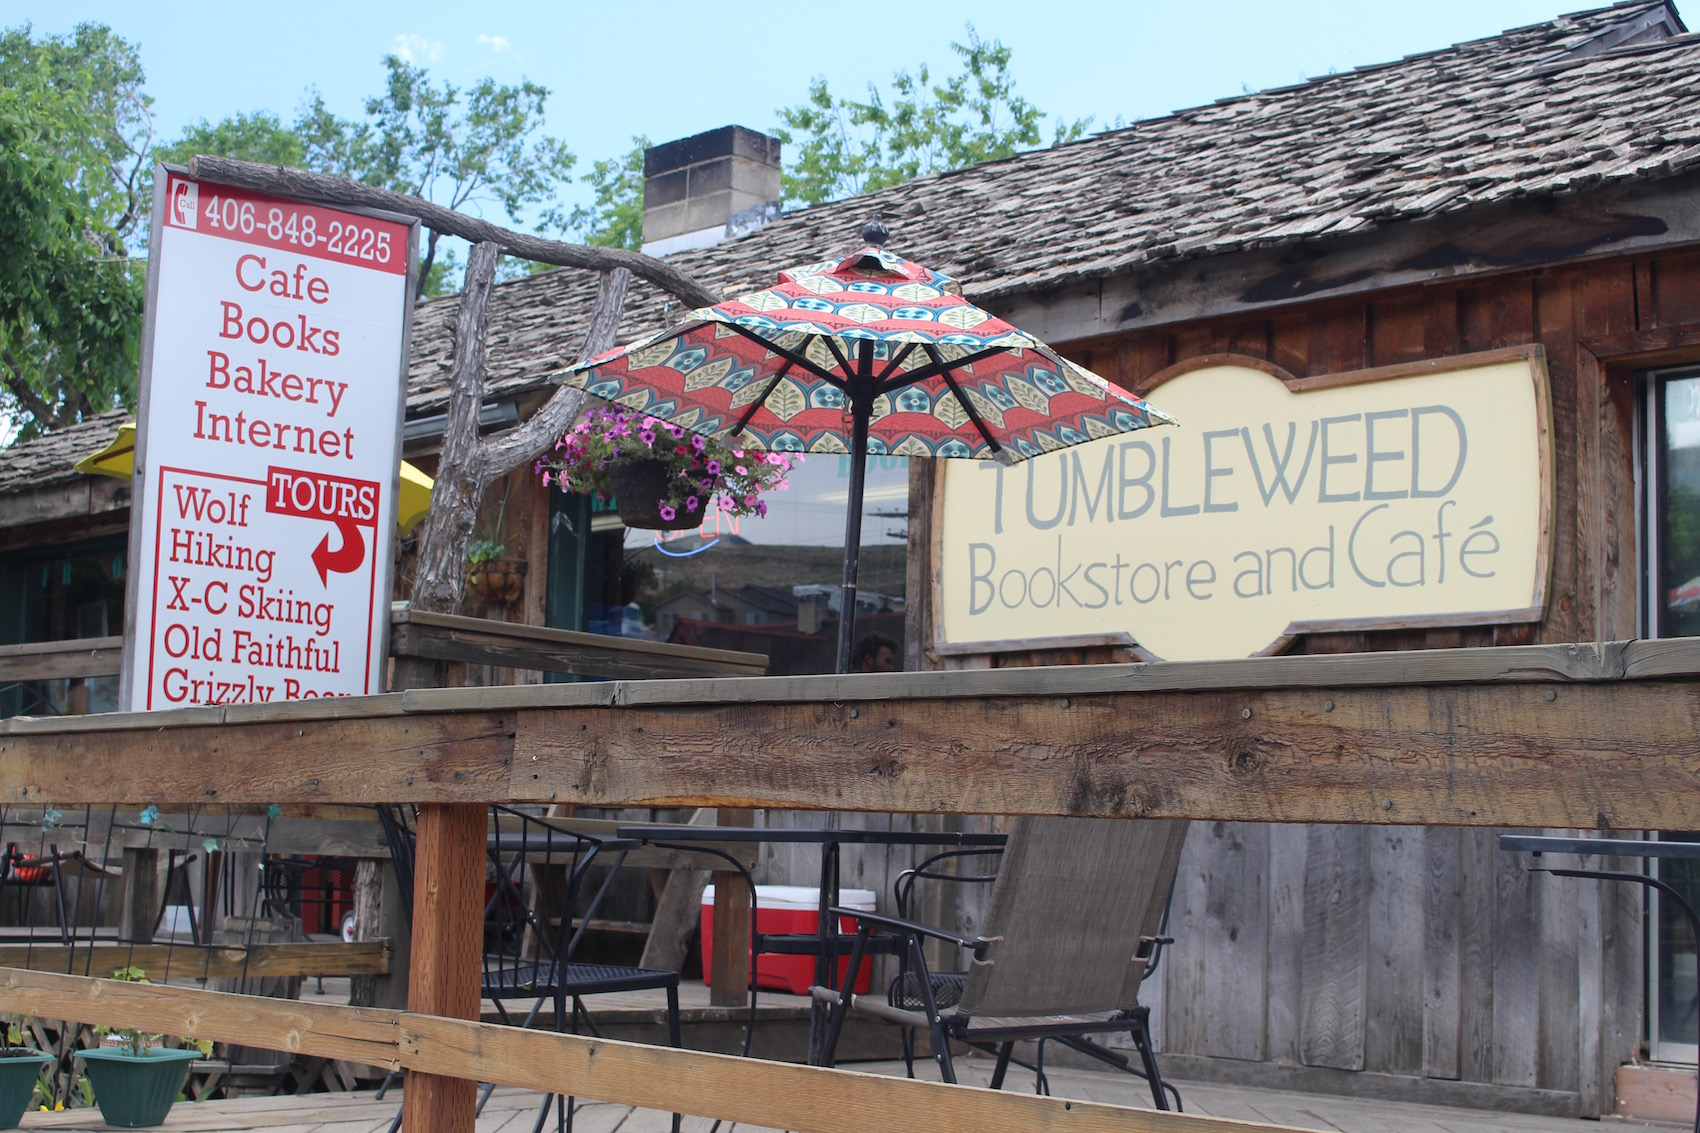 13852 Tumbleweed Bookstore and Cafe Gardiner credit Tim ODonoghue